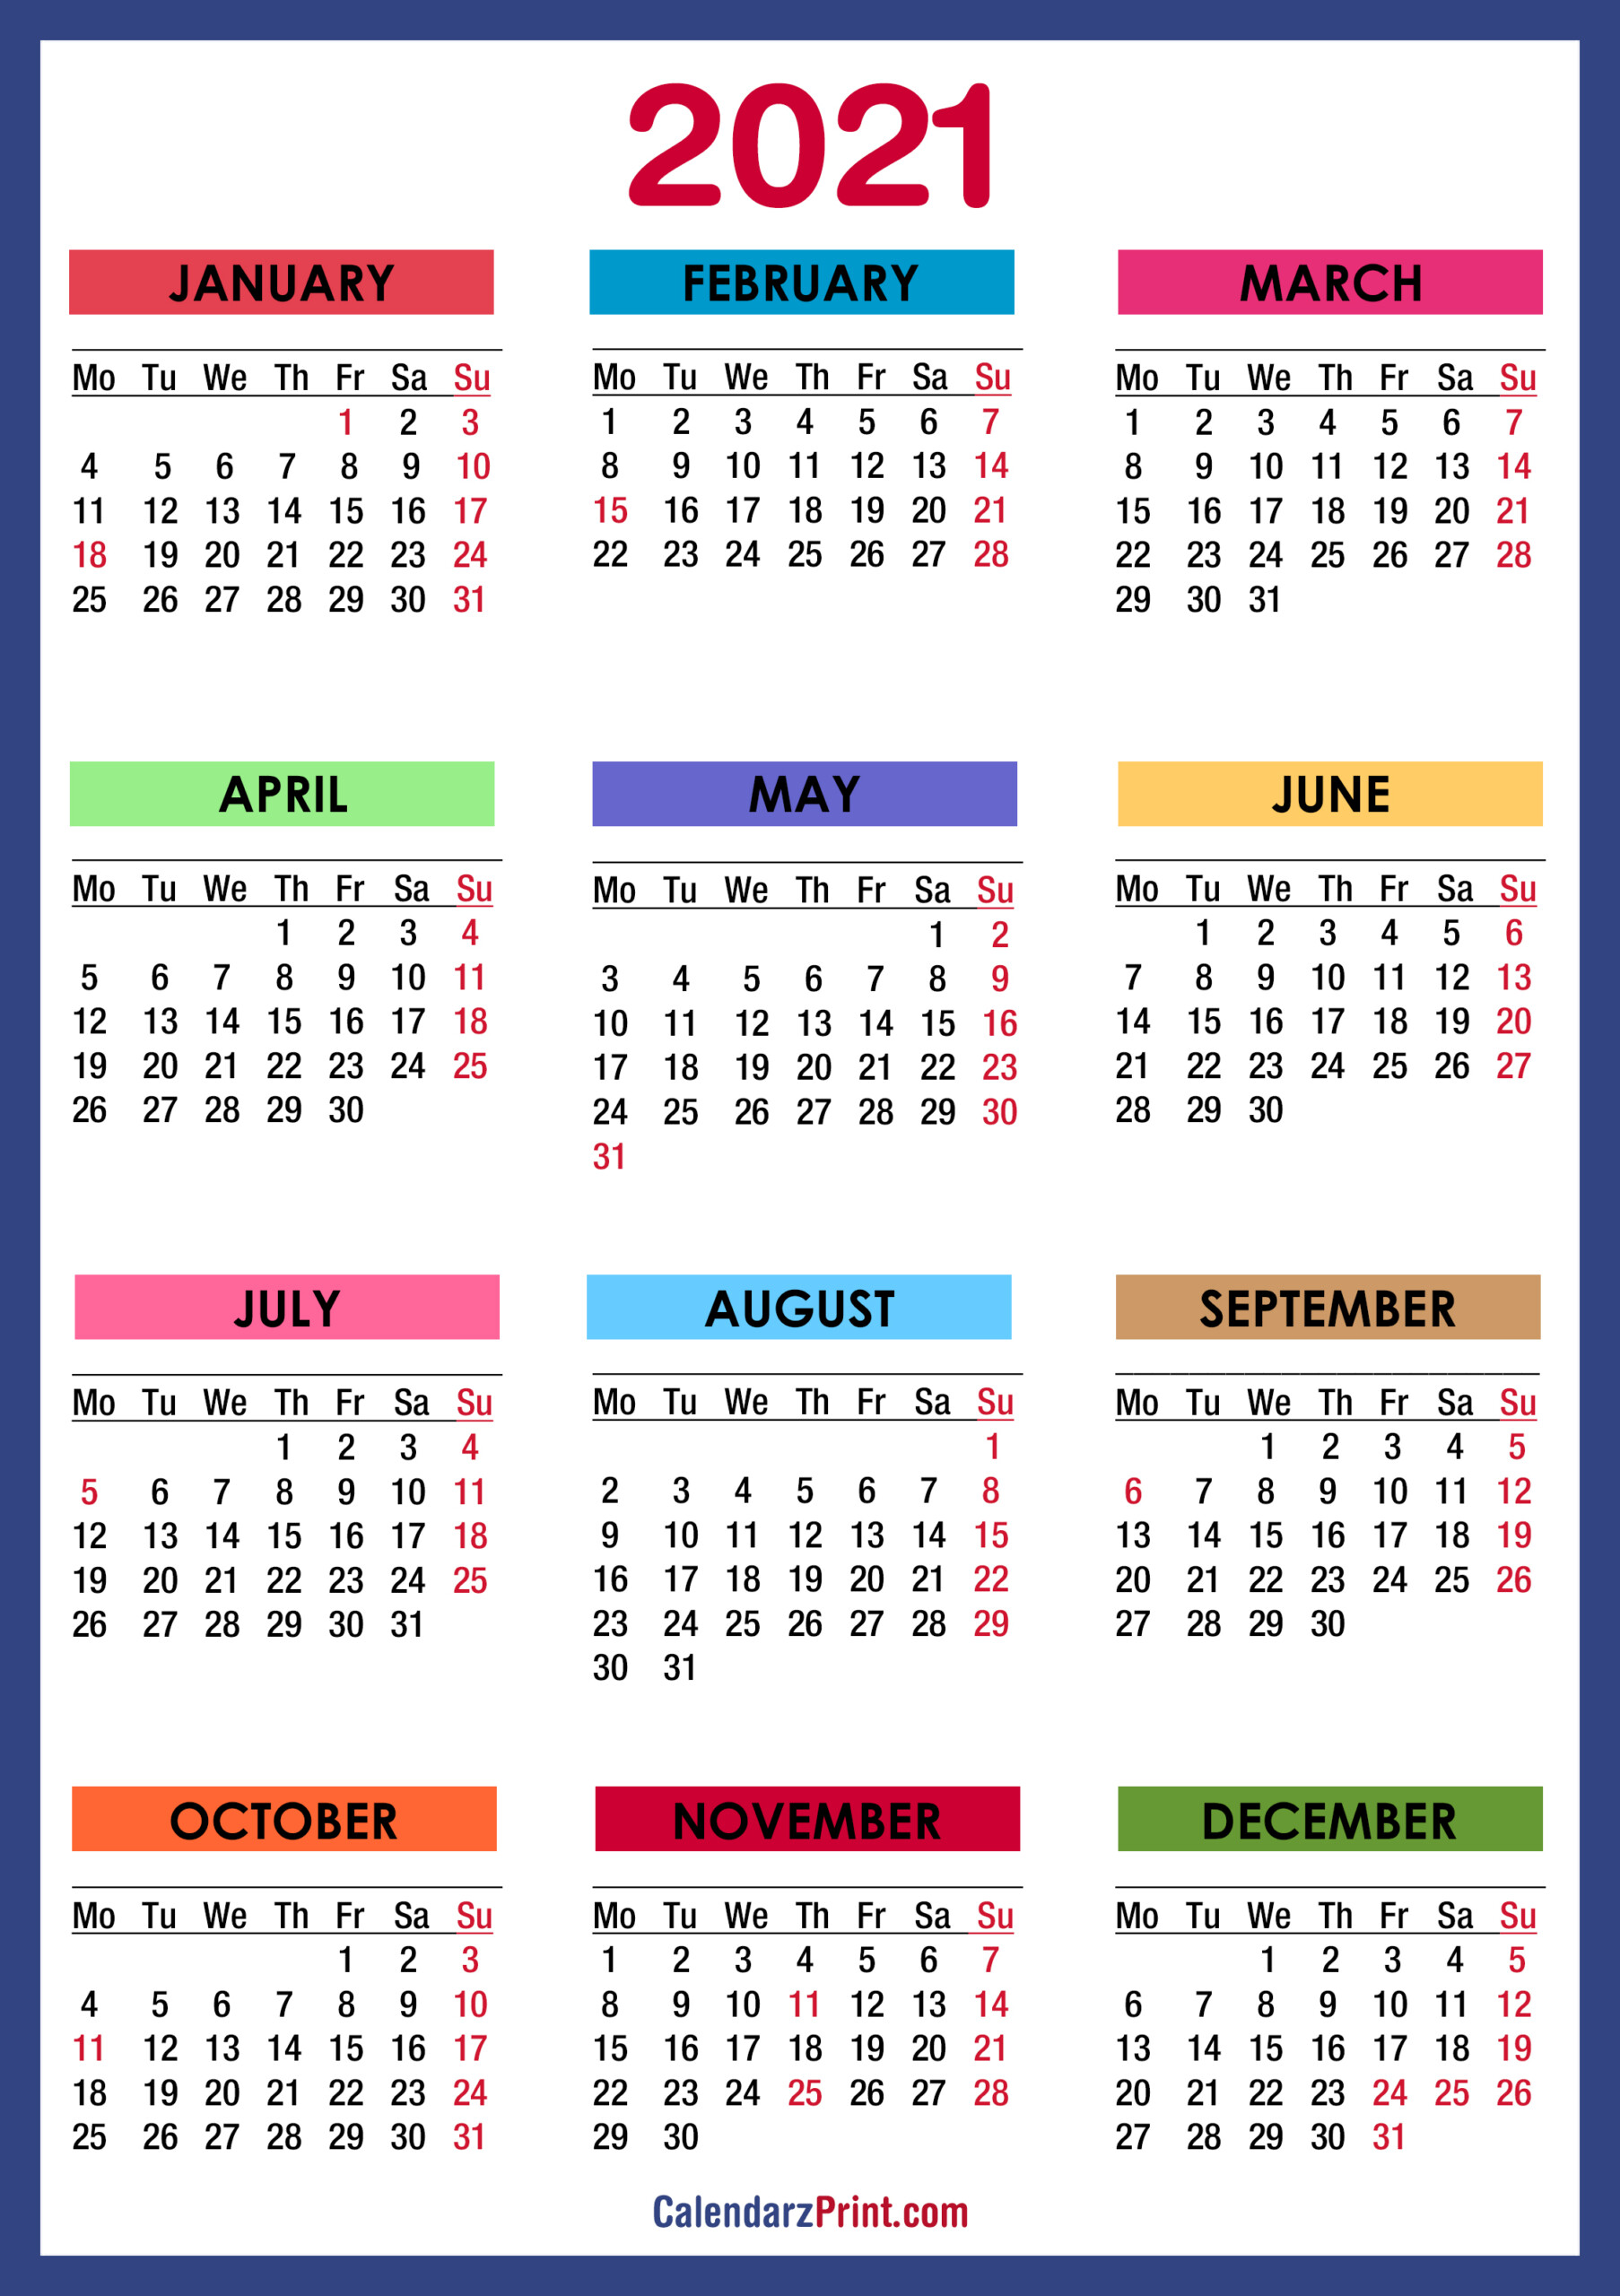 2021 Calendar With Holidays, Printable Free, Colorful, Blue